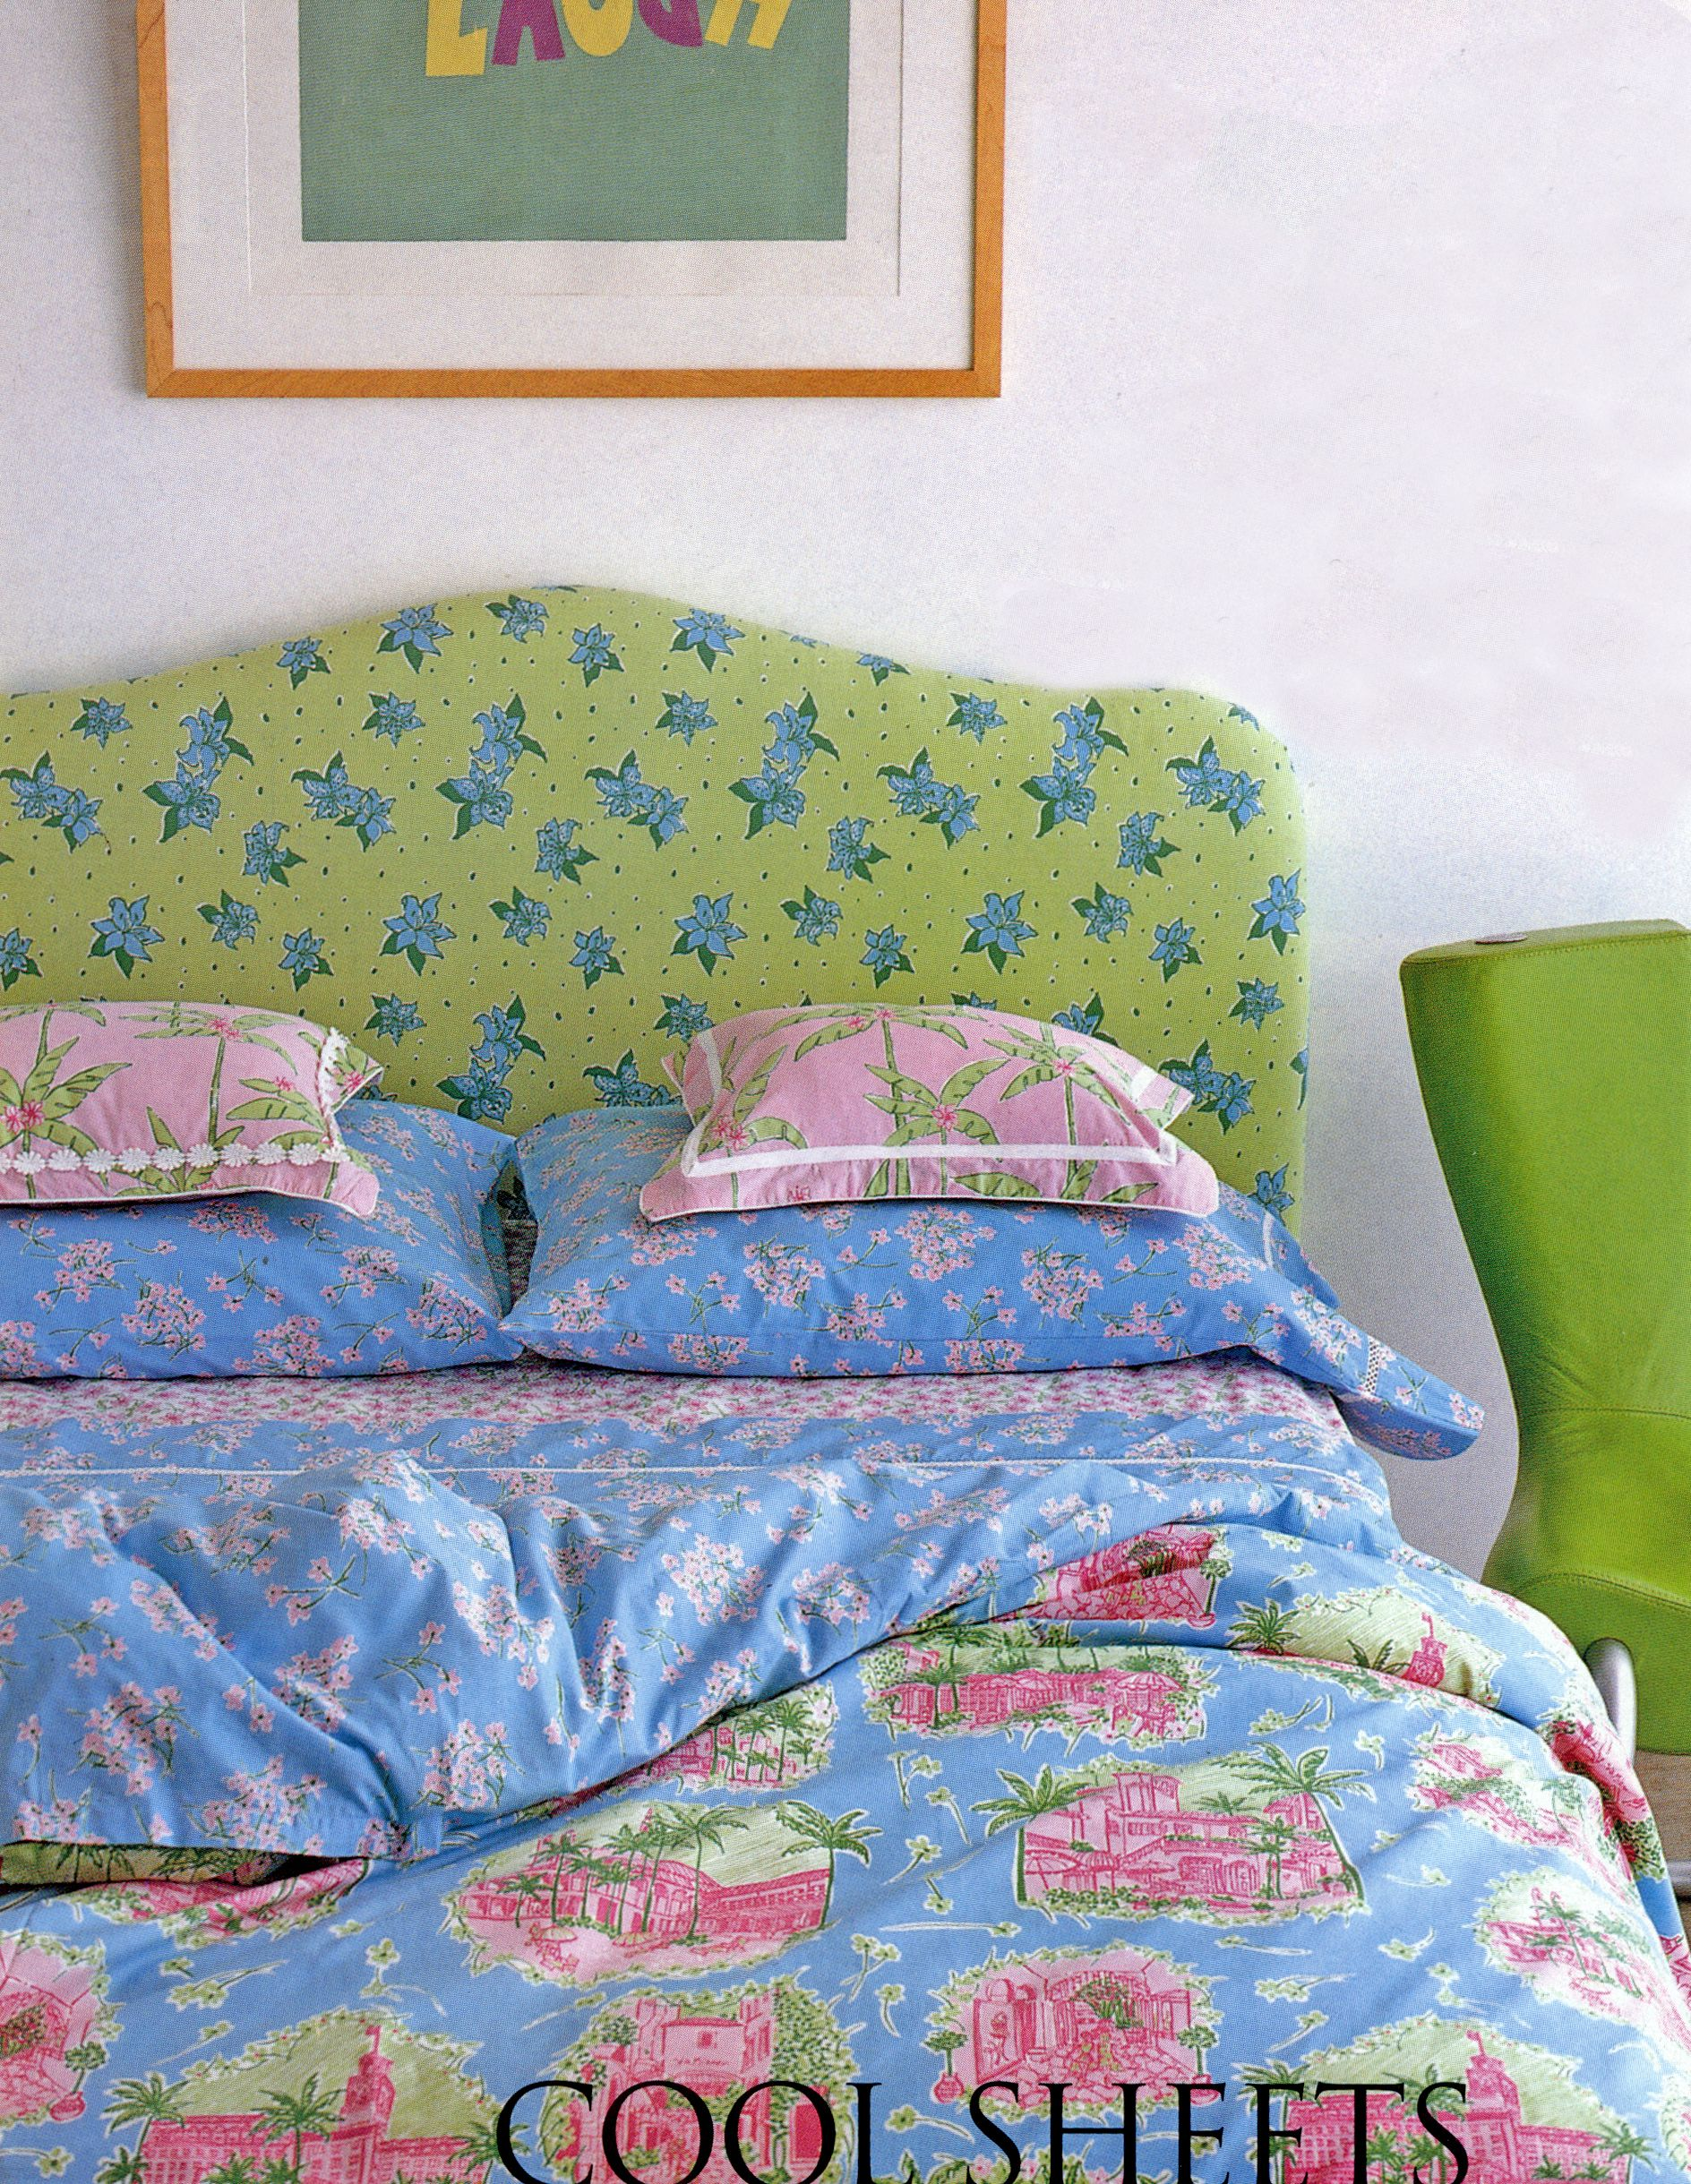 Cover Headboard With Fabric Lilly Pulitzers Bedding By Dan River Palm Beach Toile Duvet